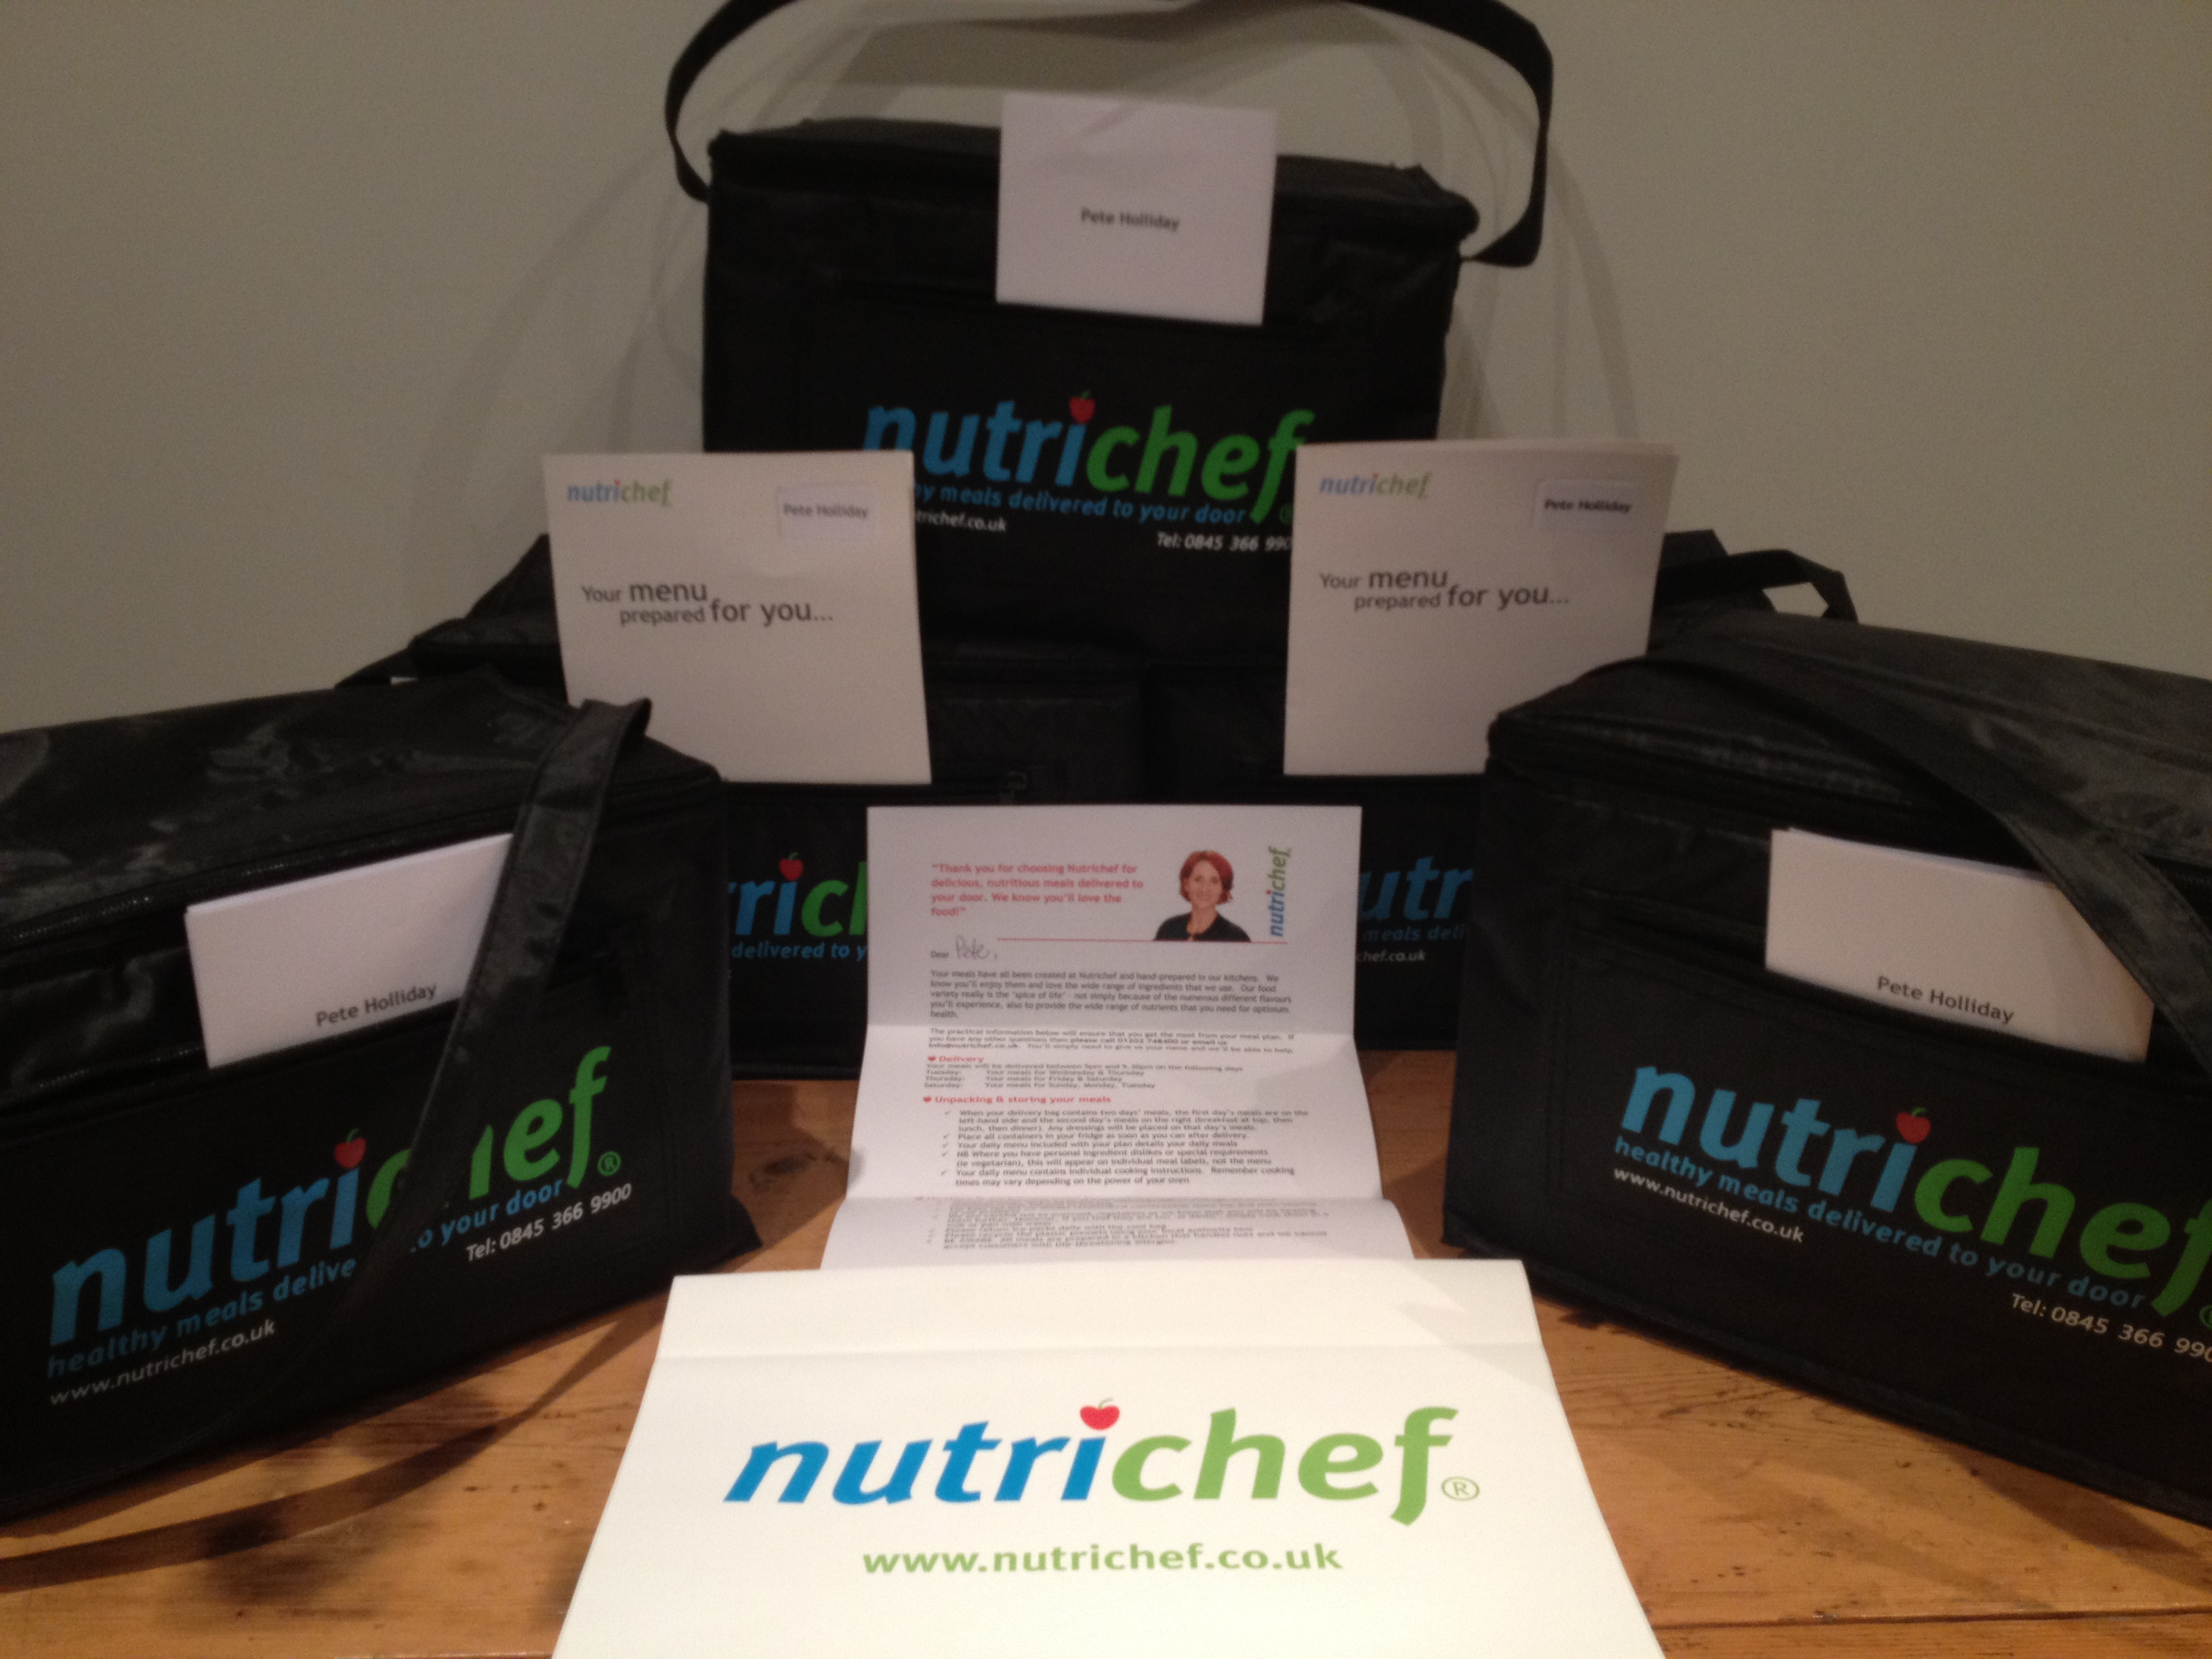 My Nutrichef delivery